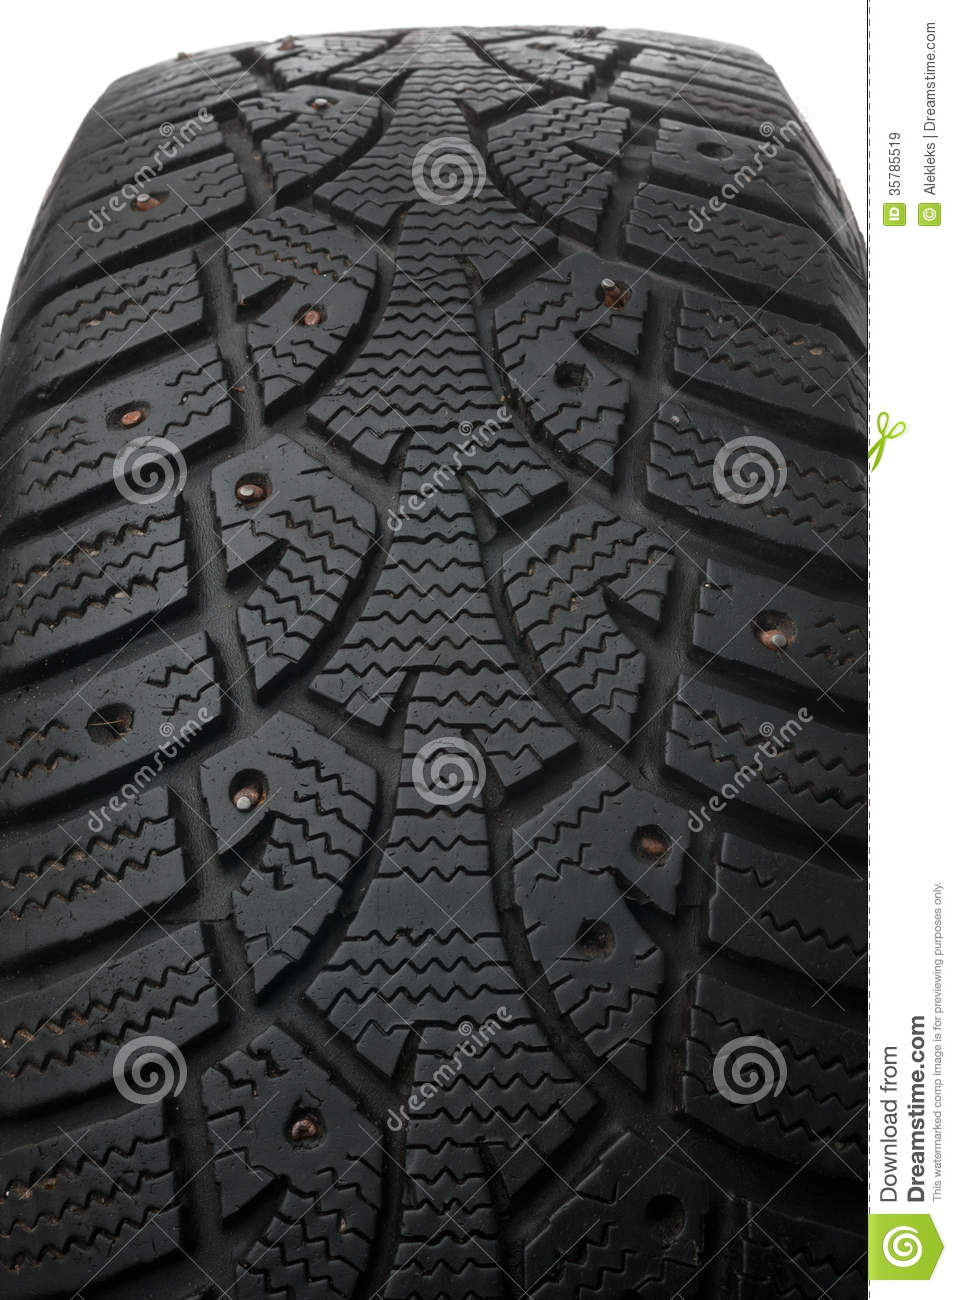 how to put studs on winter tires